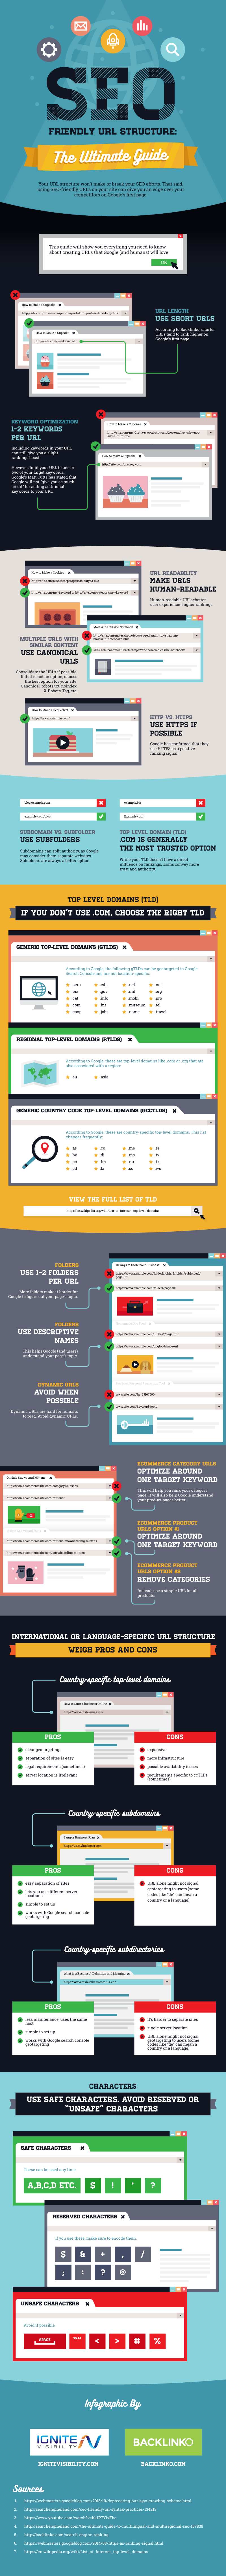 infographie-url-seo